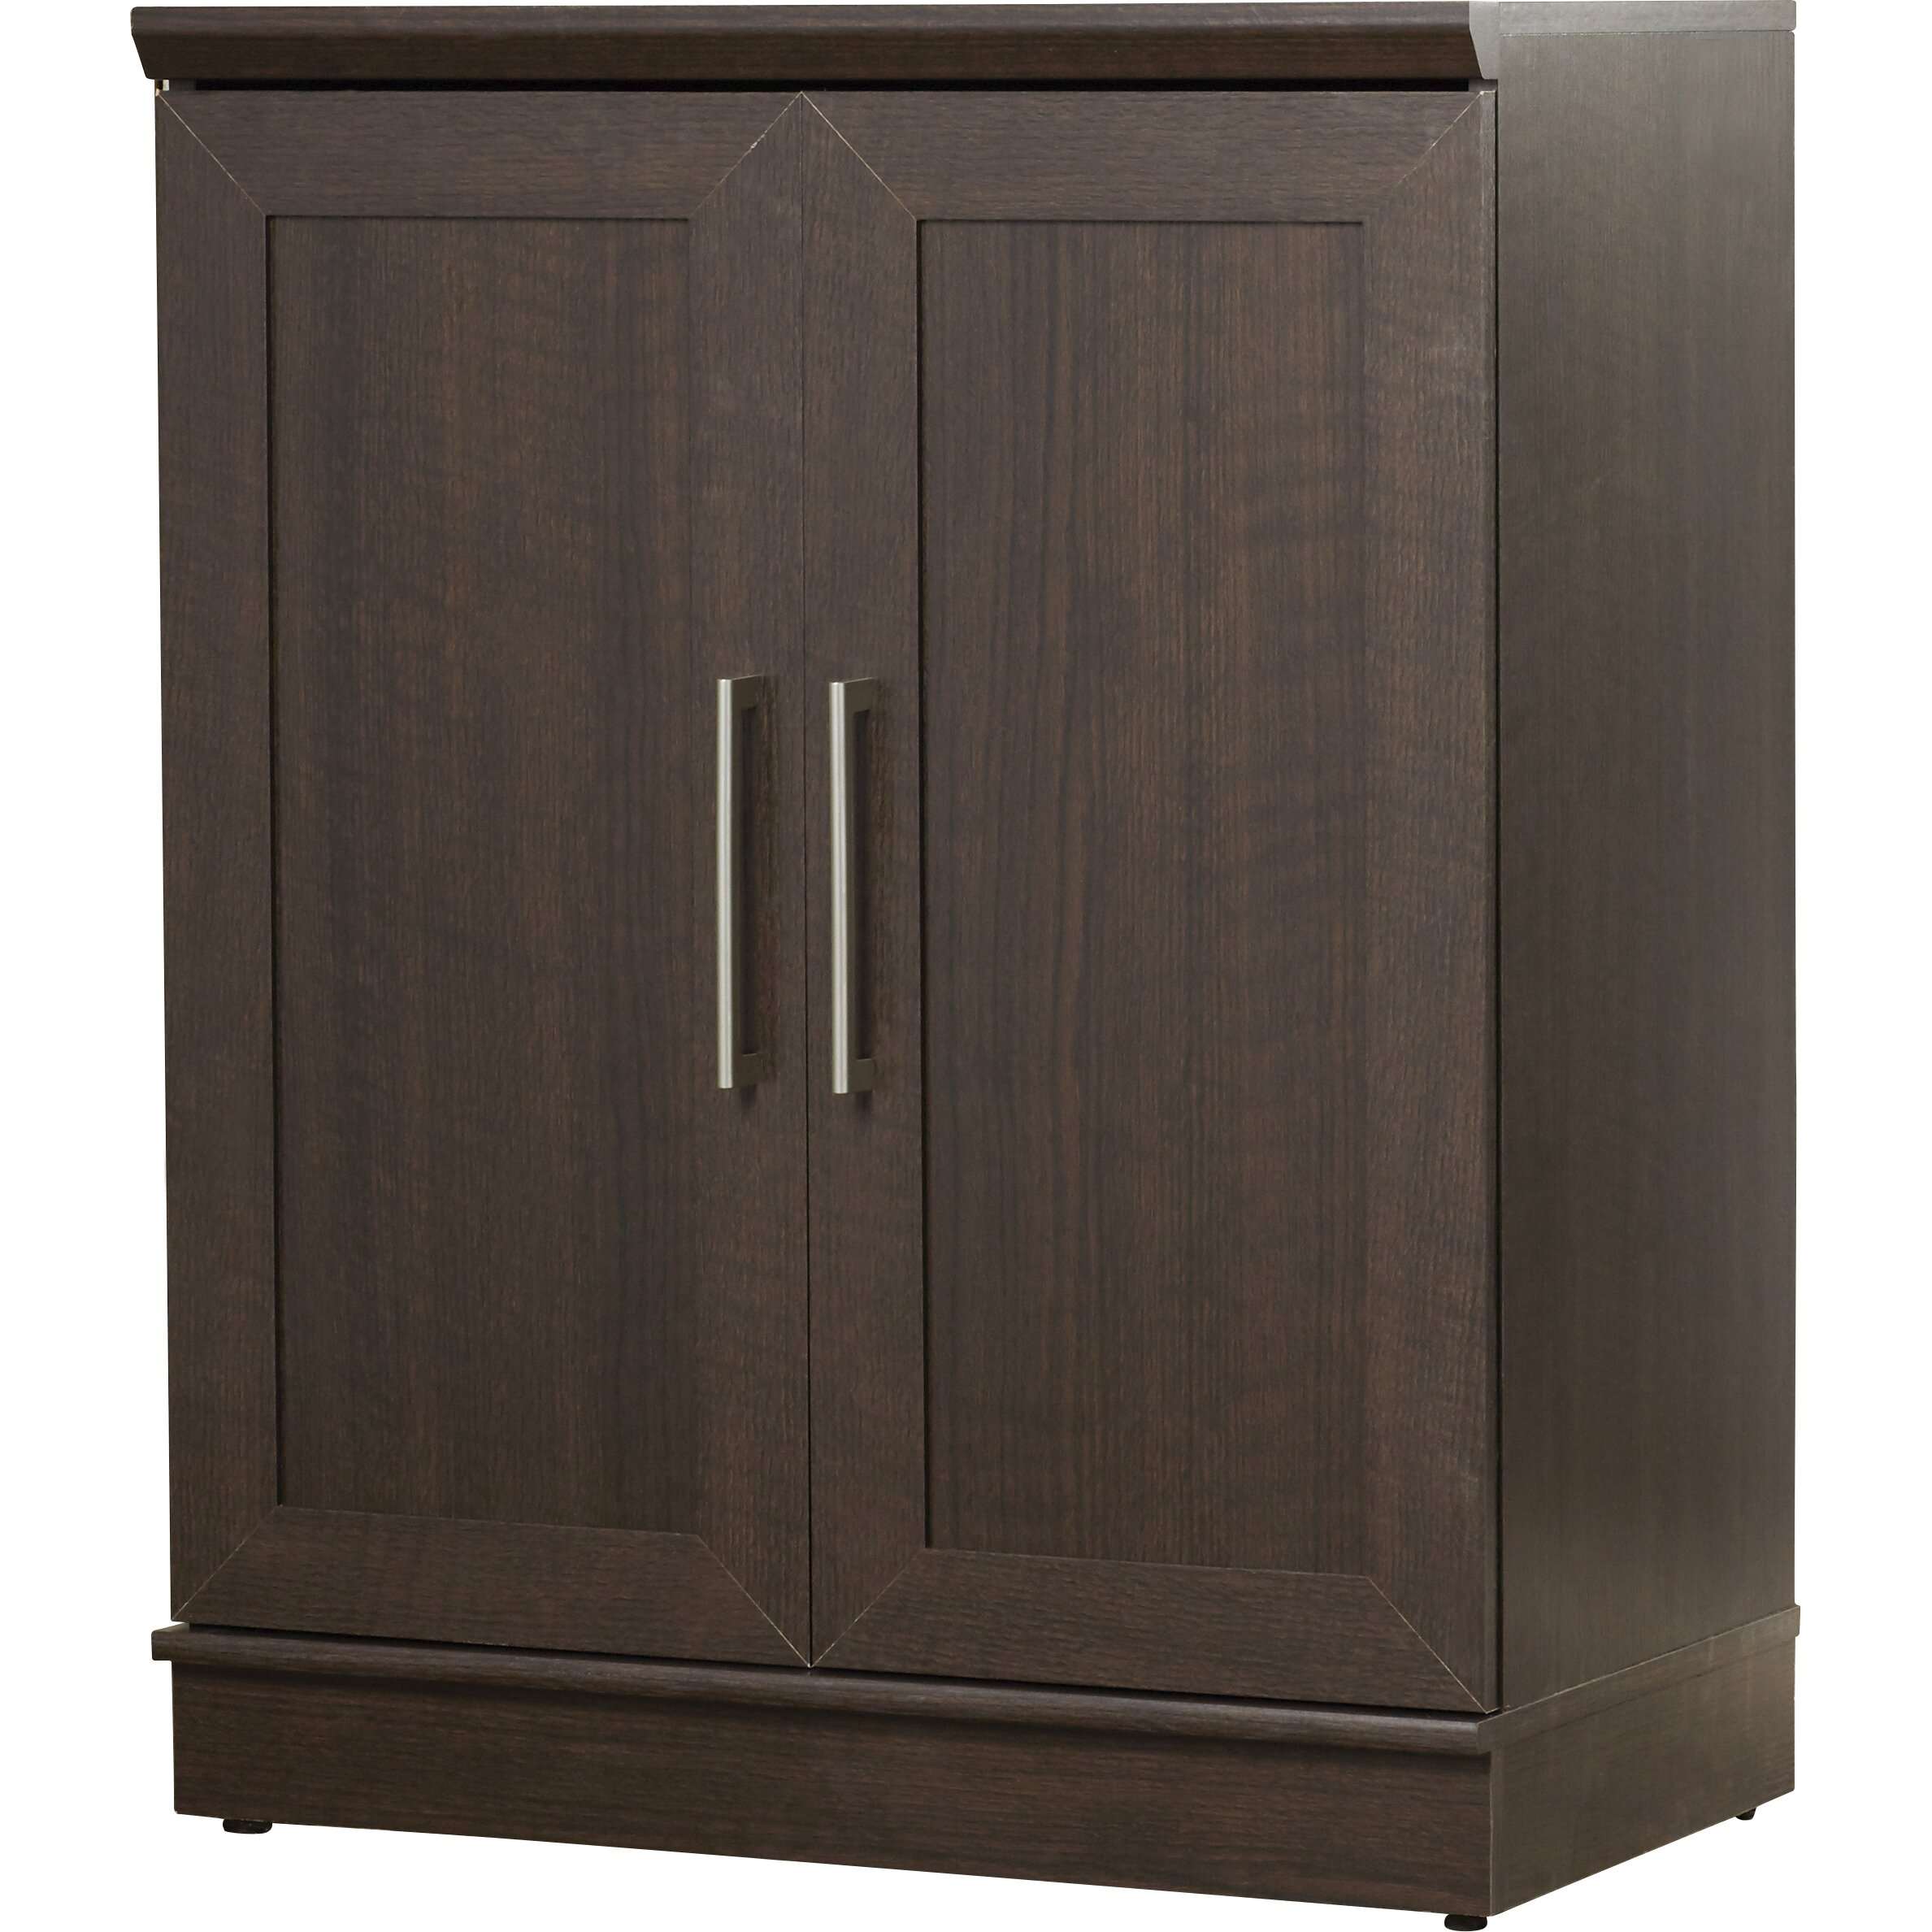 Sauder HomePlus 2 Door Storage Cabinet & Reviews | Wayfair.ca